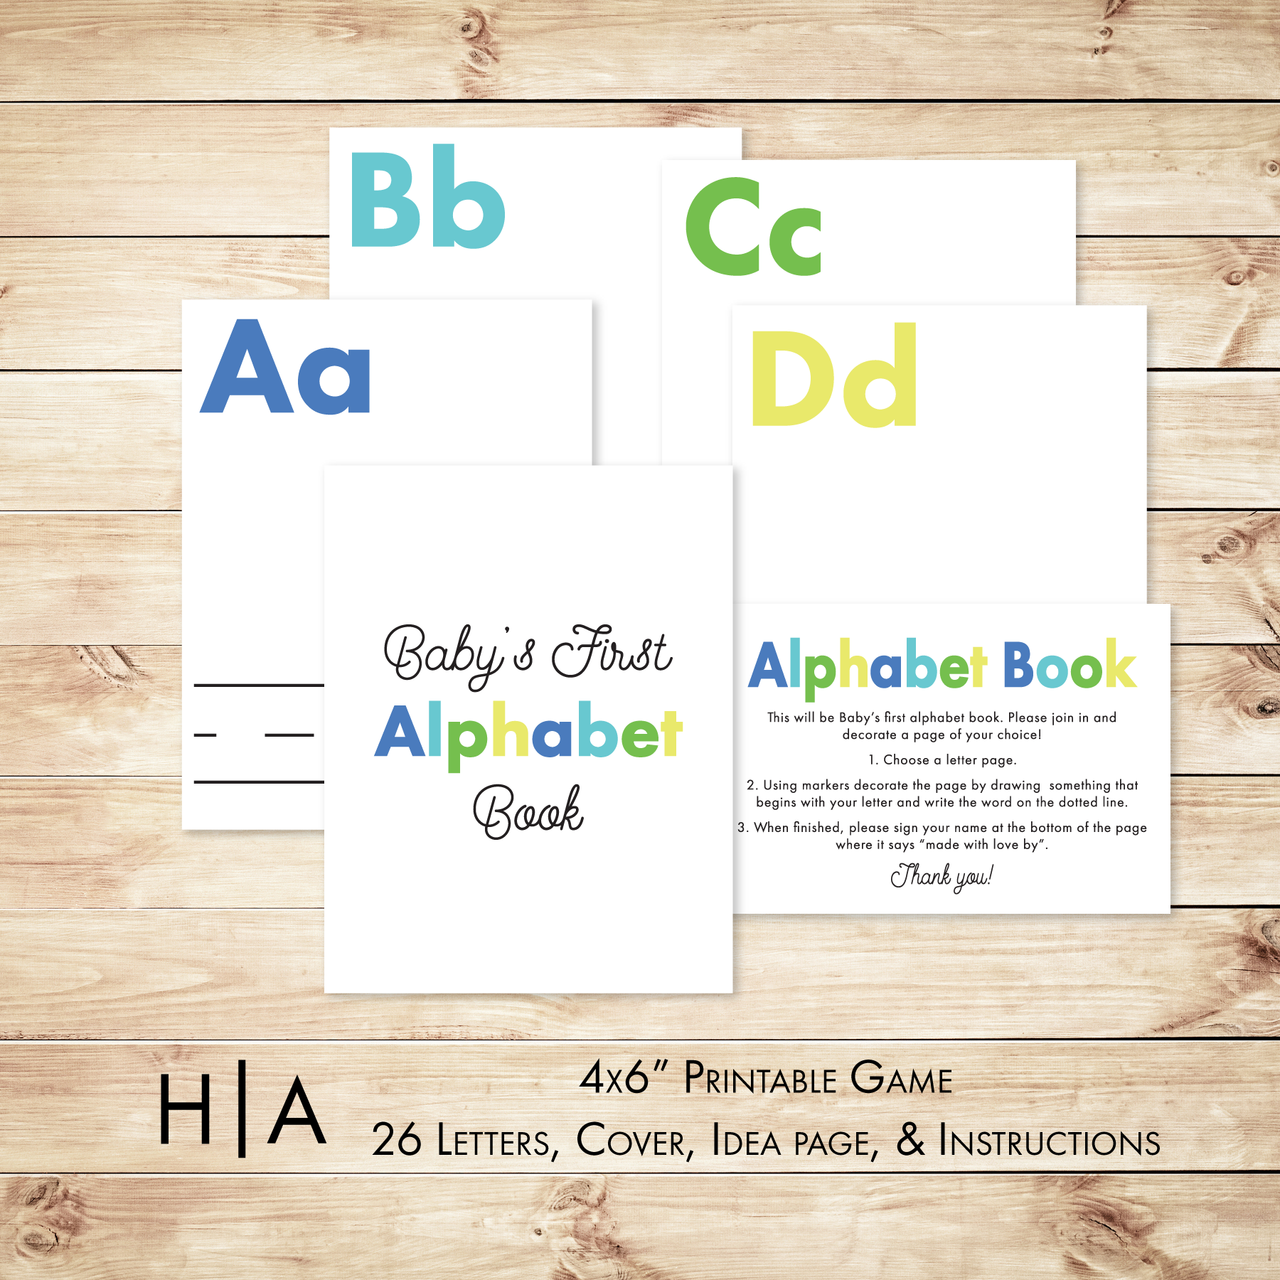 DIY Alphabet Book Baby Shower Activity Game - Hewitt Avenue